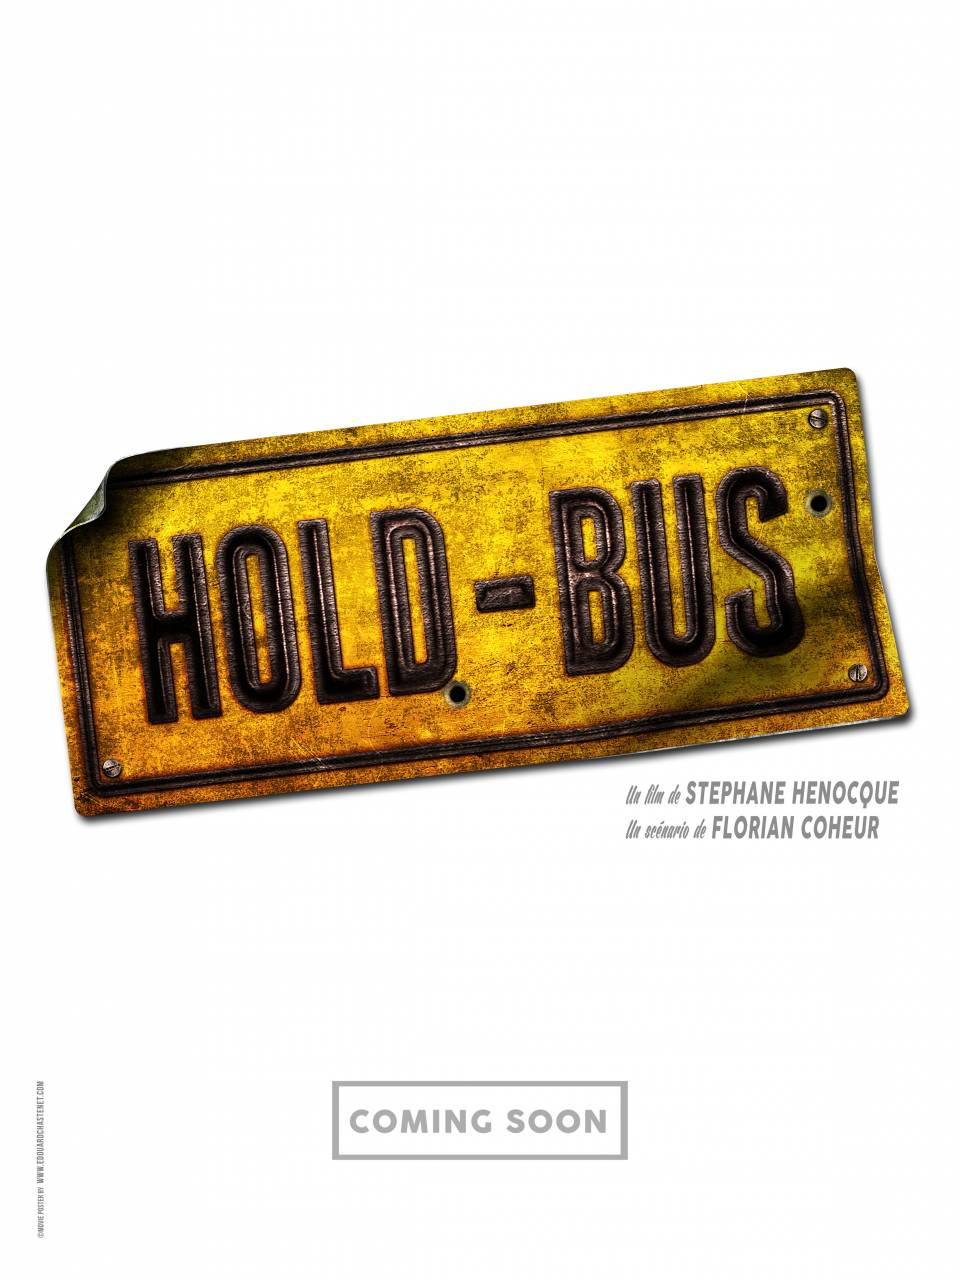 Hold Bus Stephane Henocque